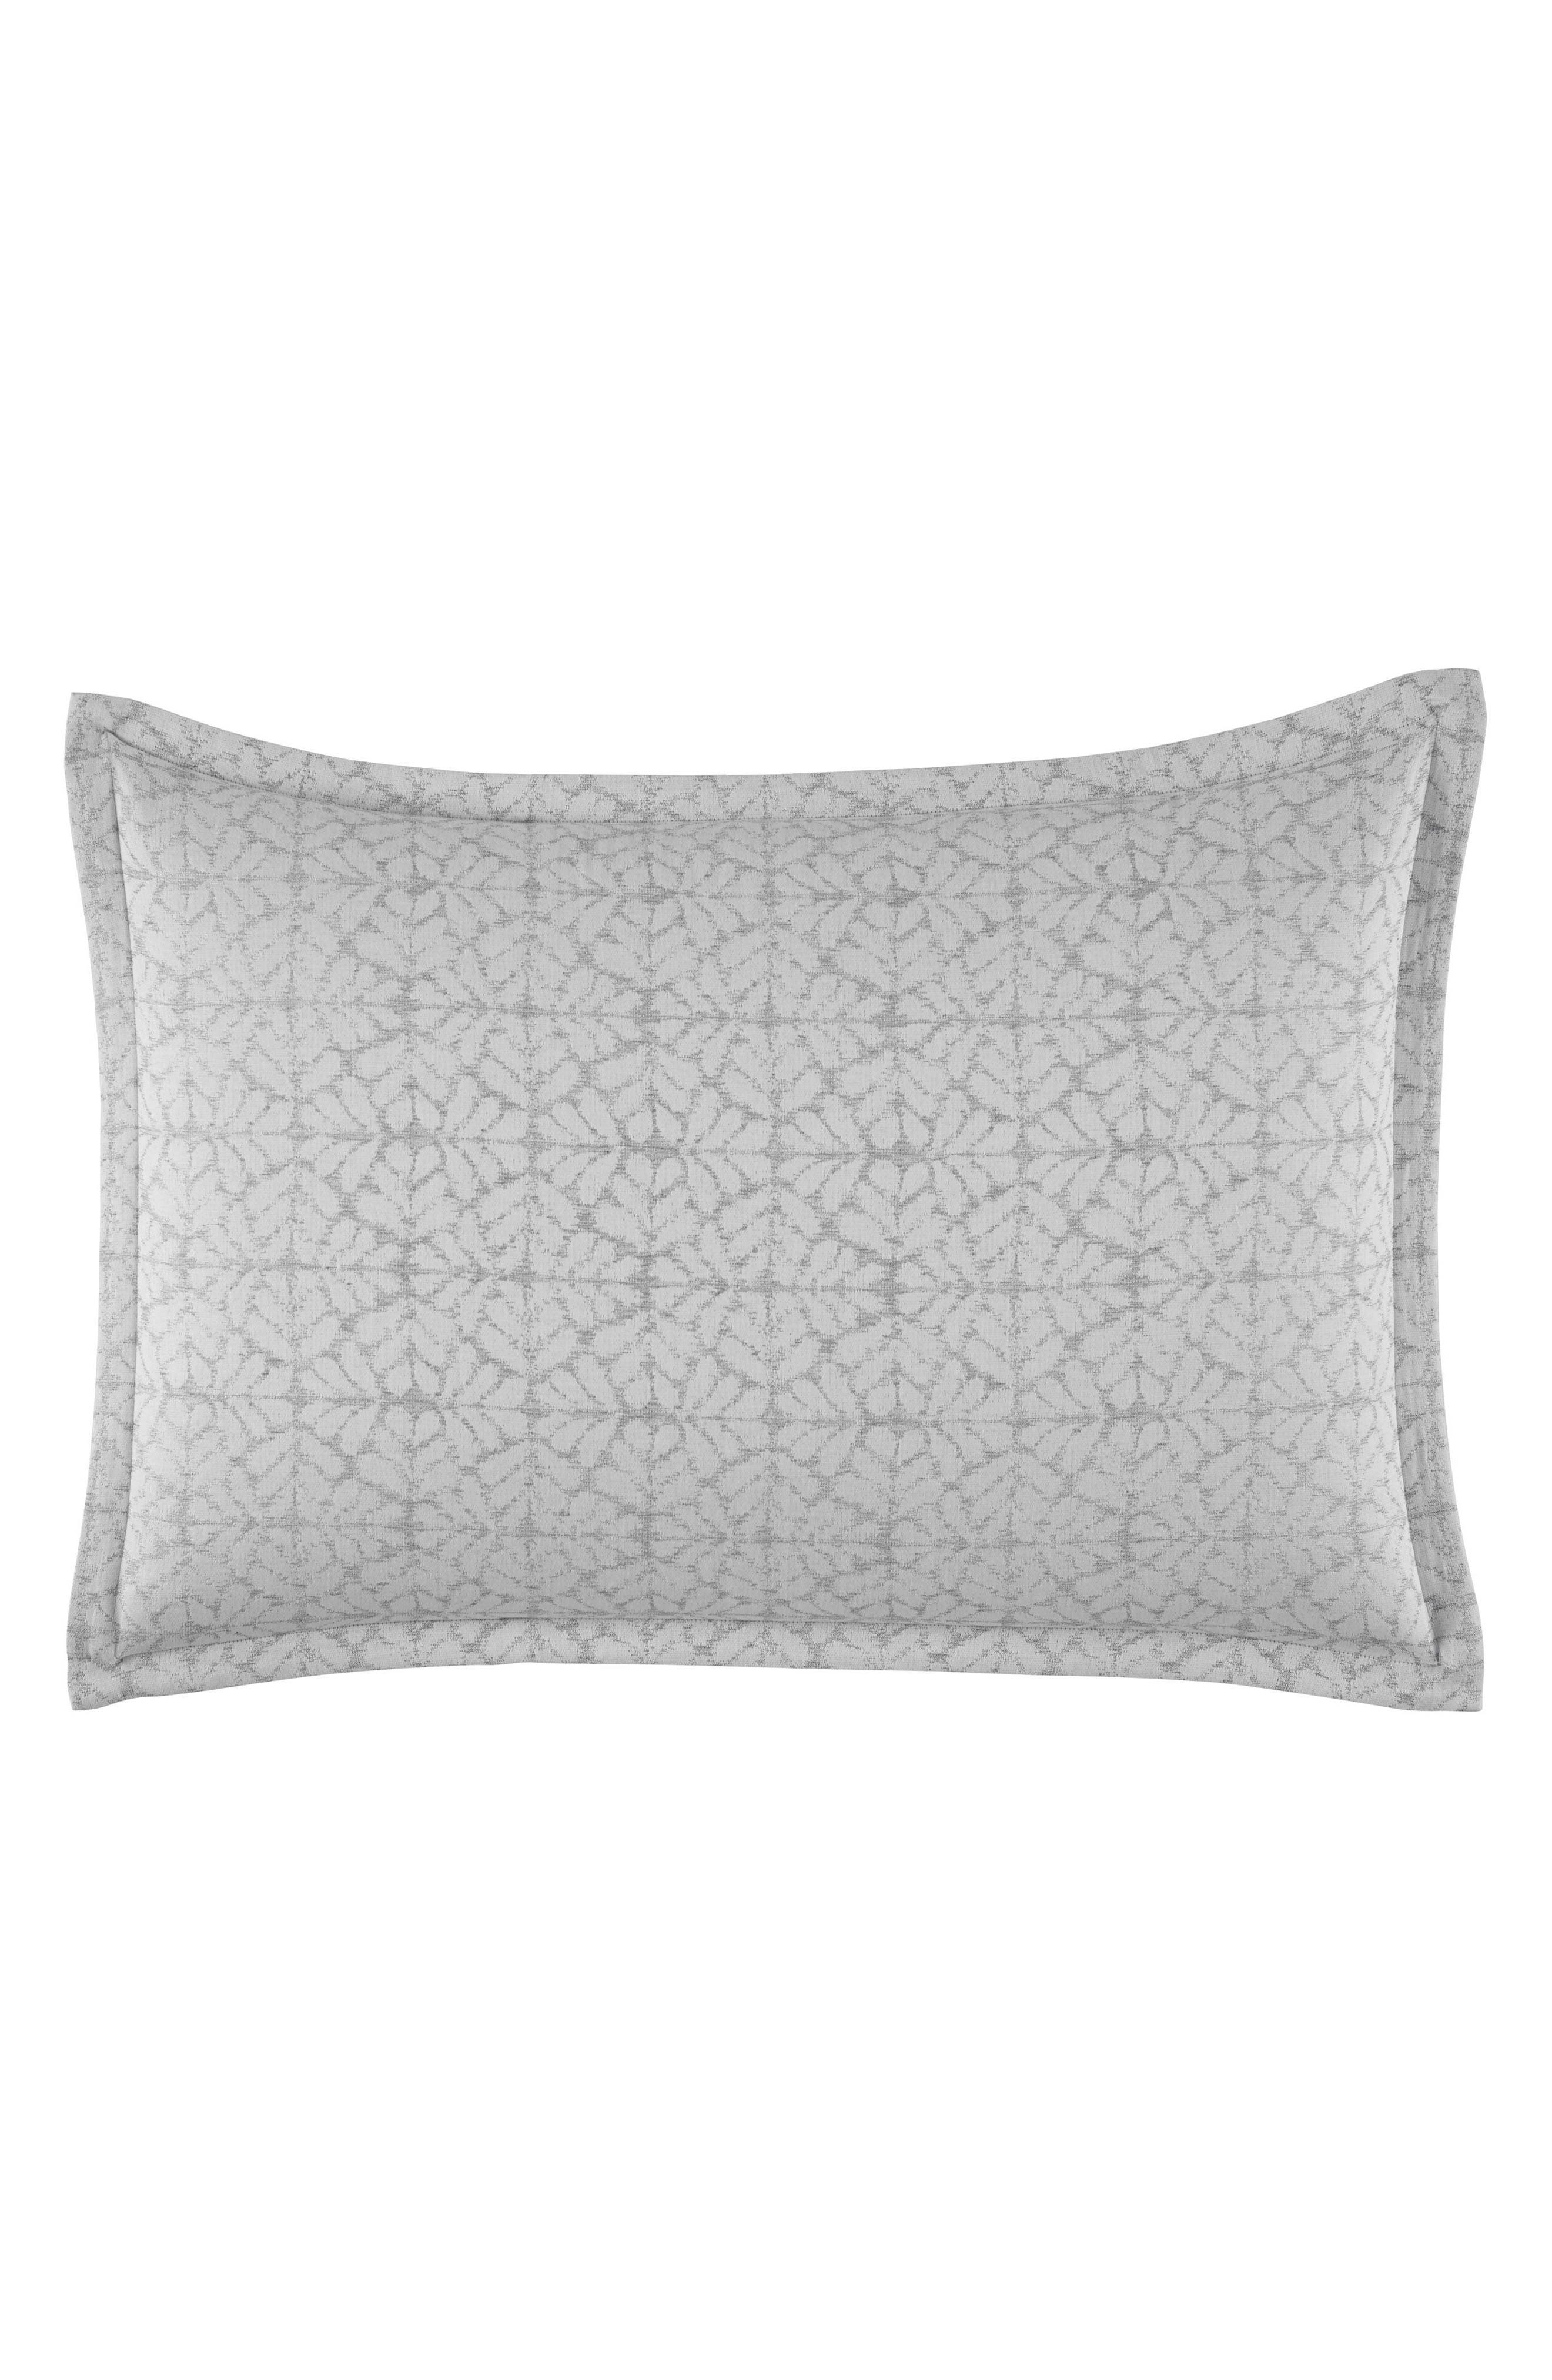 Alternate Image 1 Selected - Vera Wang Mirrored Square Sham